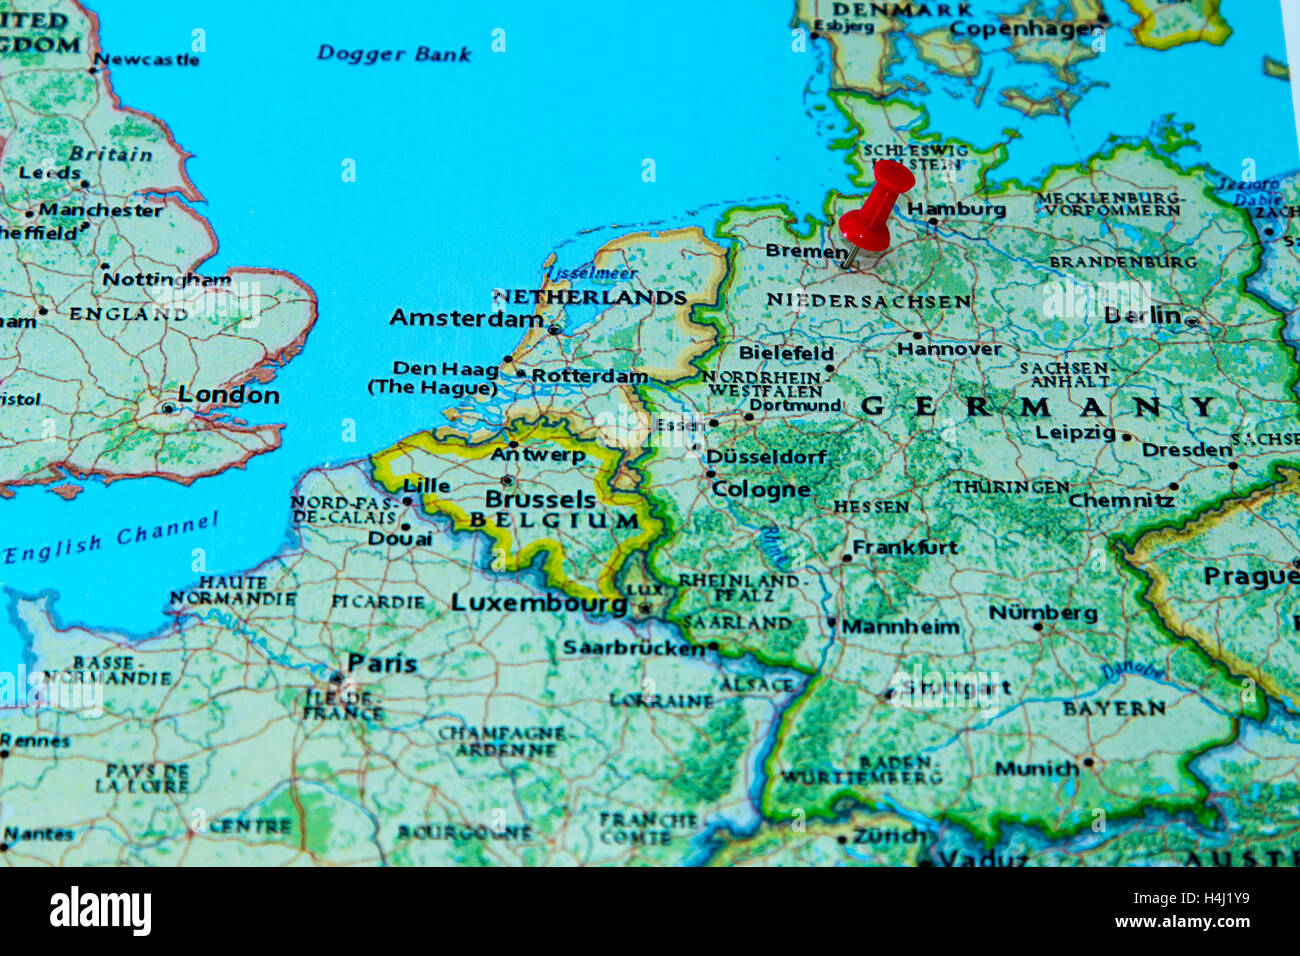 bremen germany pinned on a map of europe